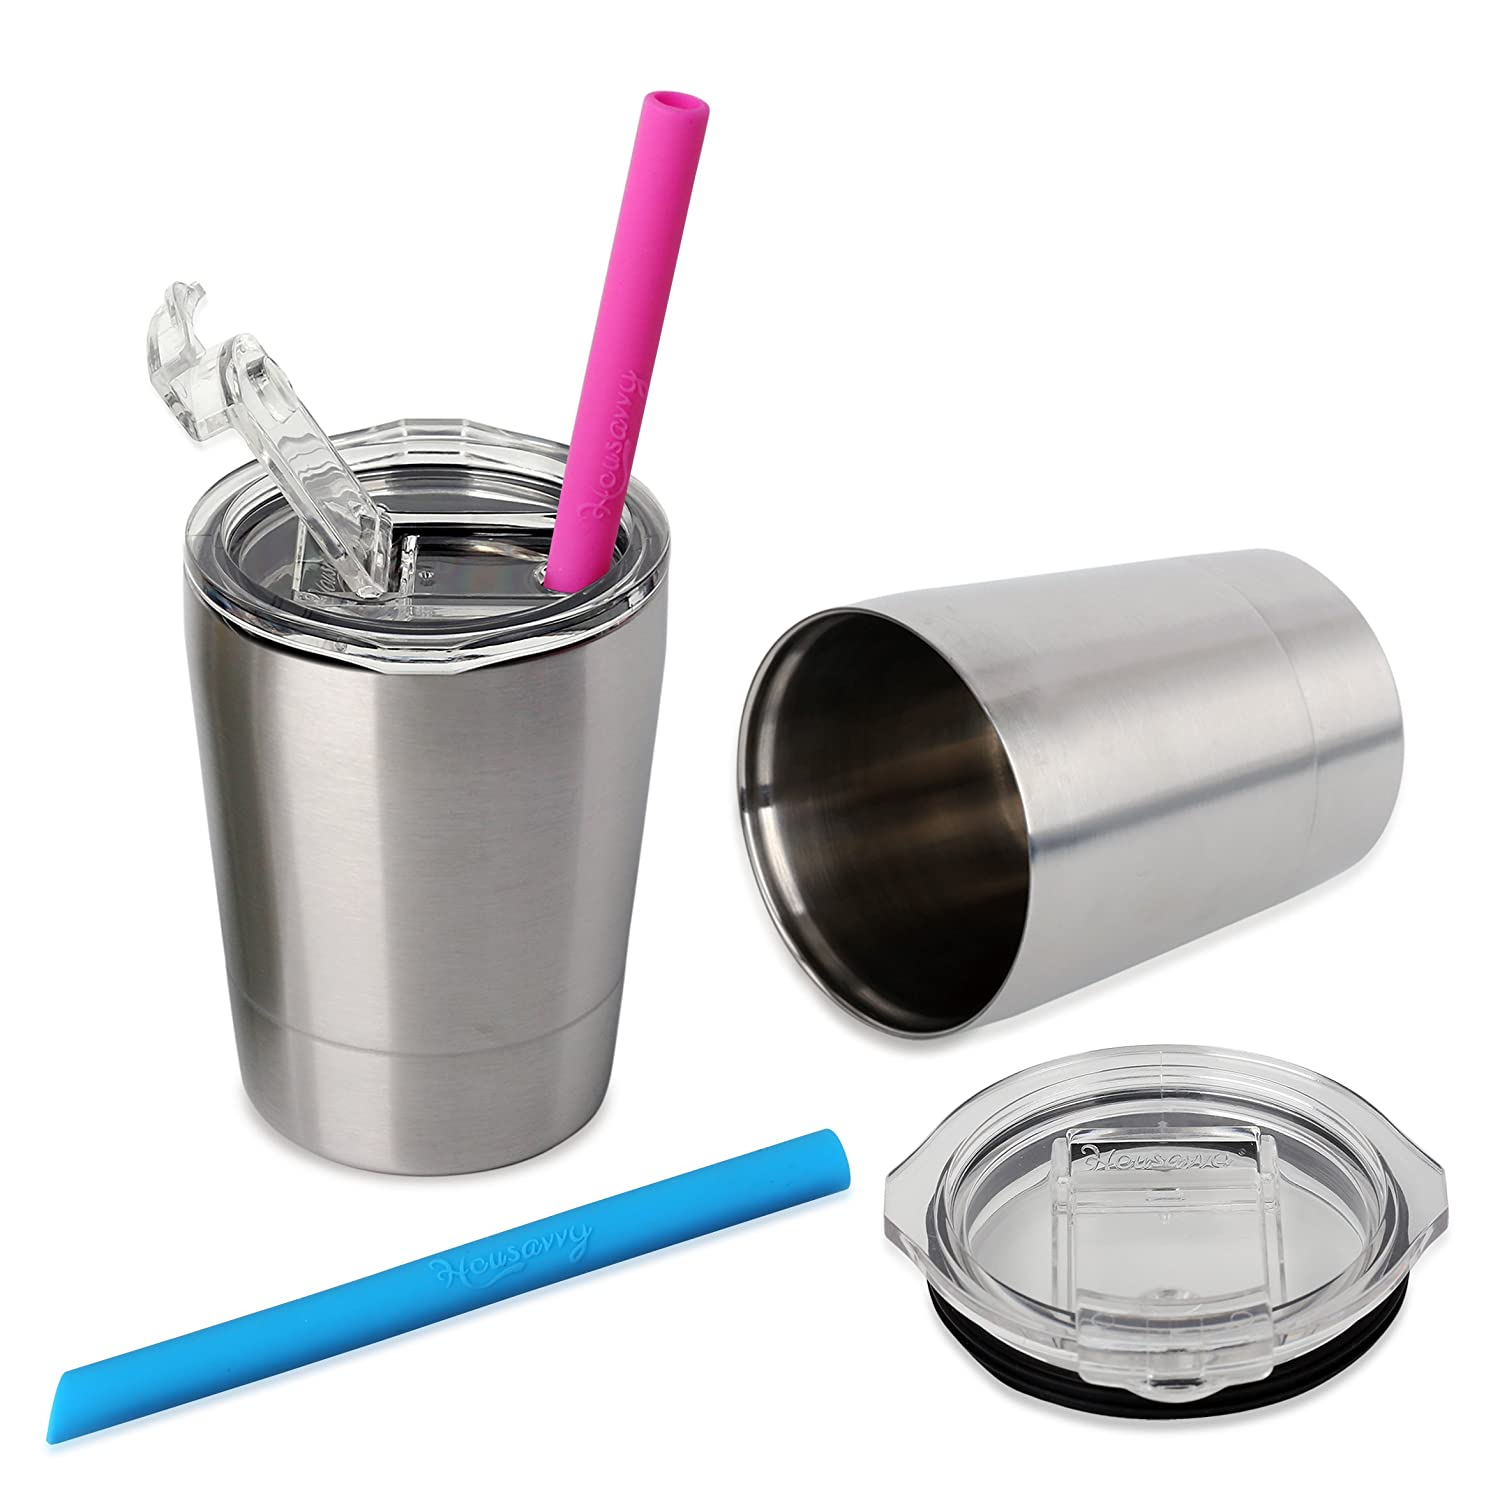 c2e4d681f0f Amazon.com : Housavvy 2 Pack Kids Stainless Steel Cups with Lids and Straws  : Baby